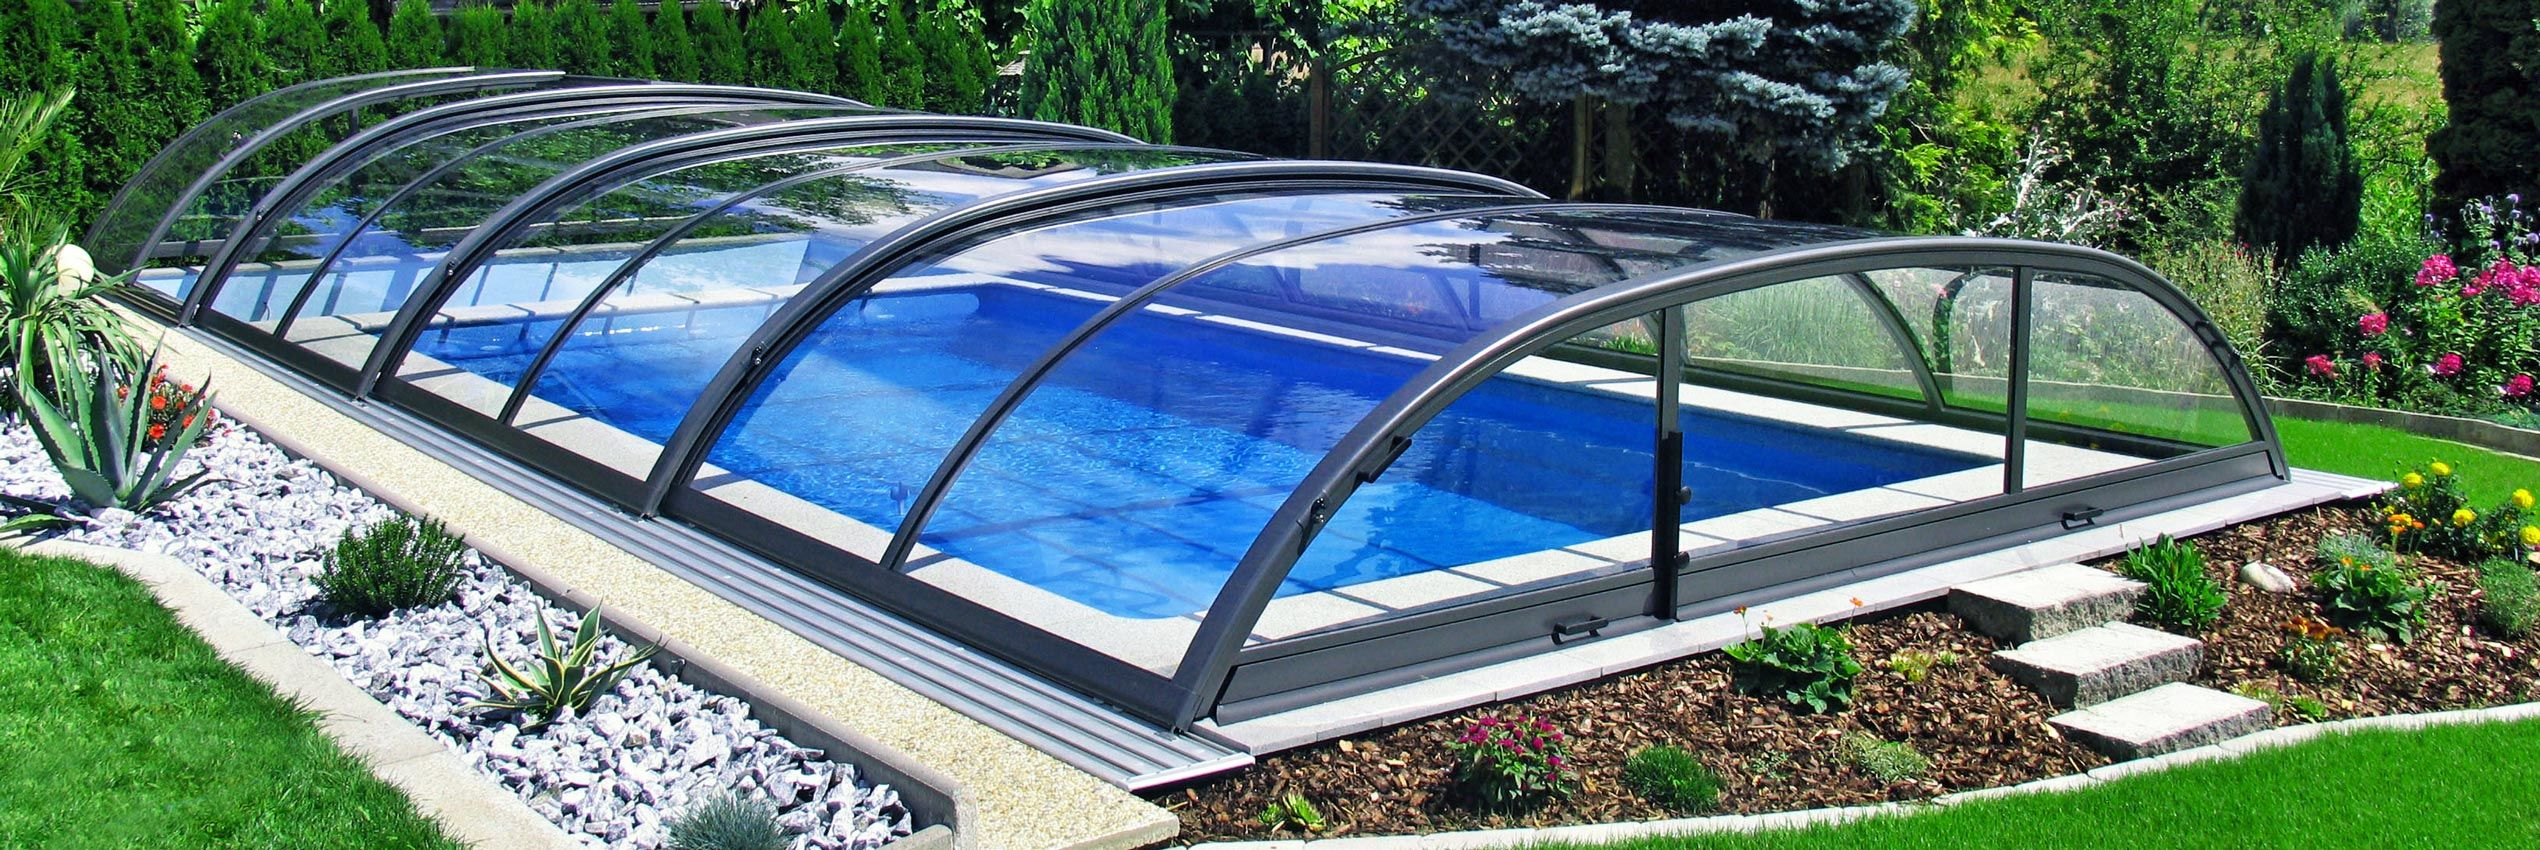 Fully closed retractable pool enclosure Elegant